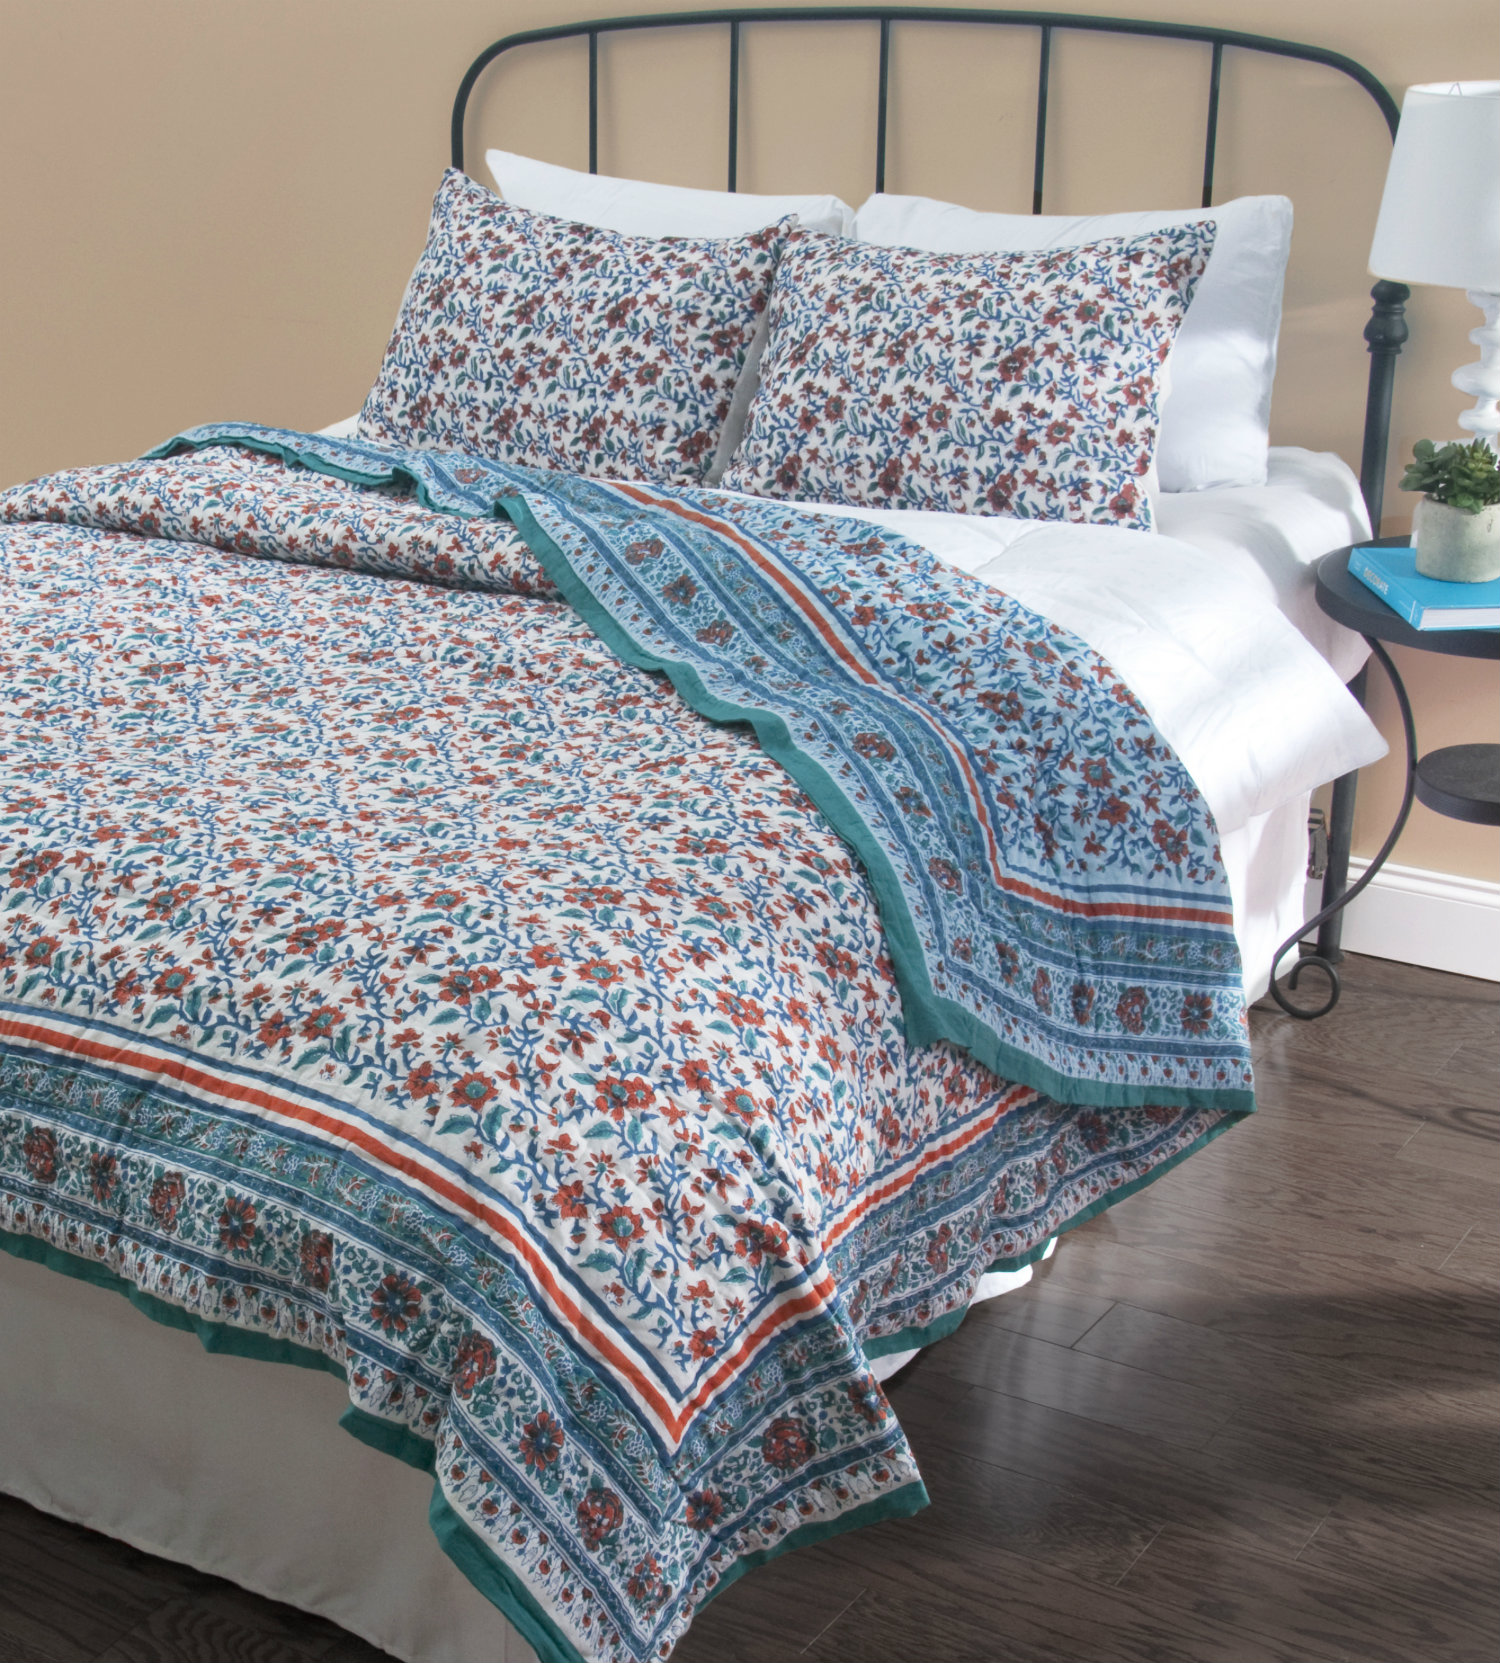 Priscilla By Rizzy Home Bedding Beddingsuperstore Com